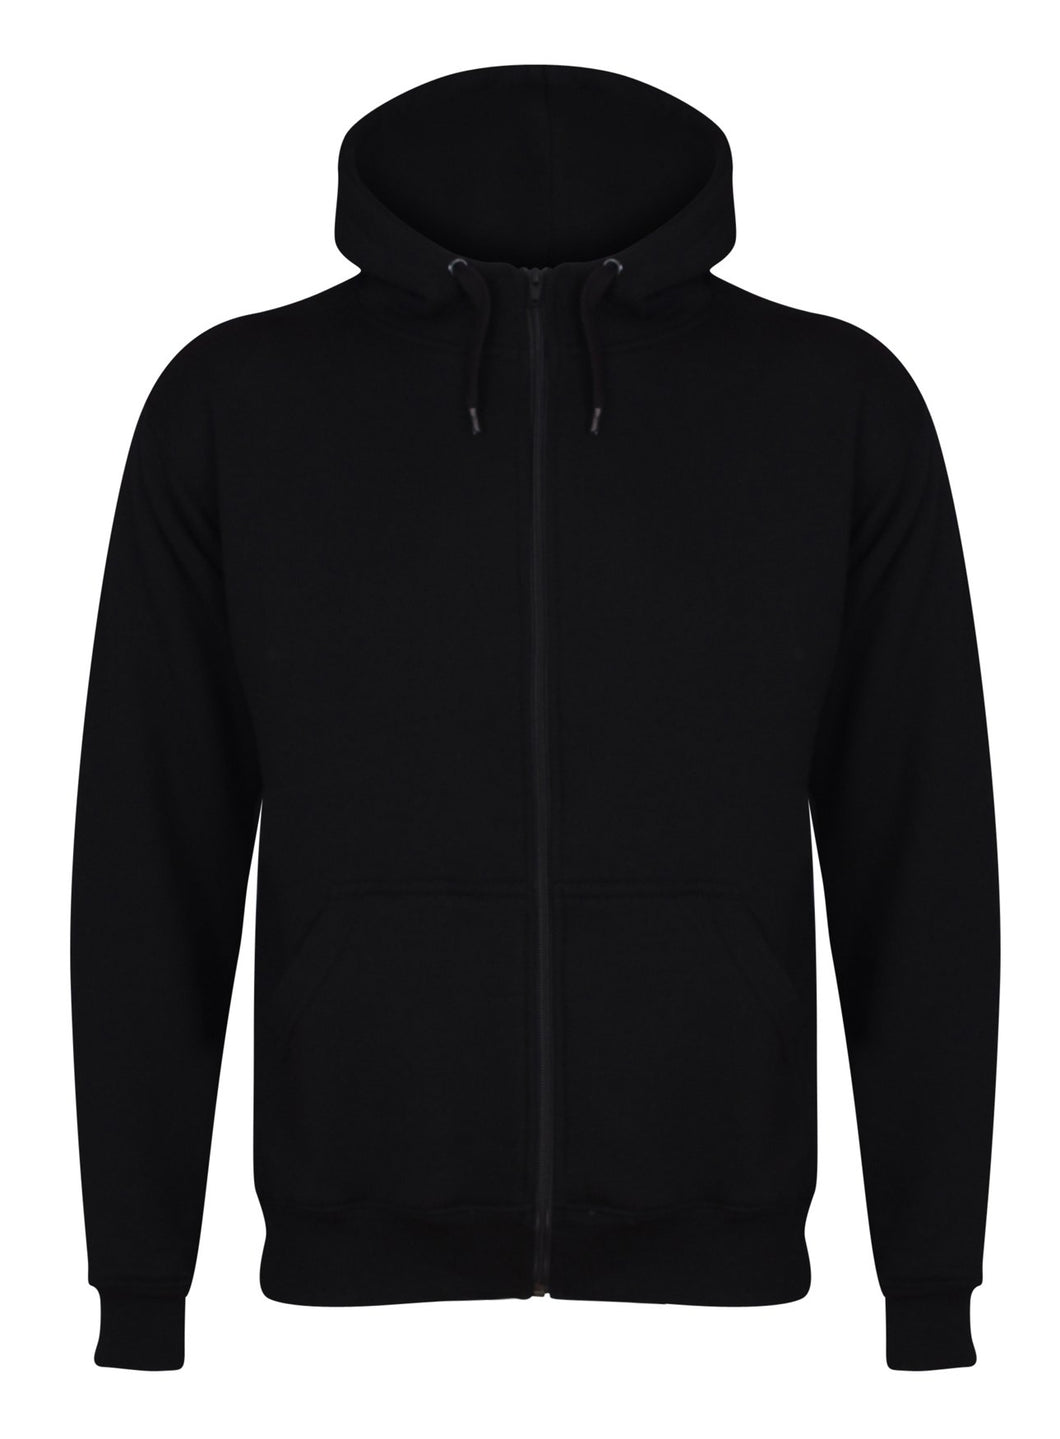 Aran Zip through Hoody Sweatshirts / Hoodies Gazelle Sports UK Yes XS Black